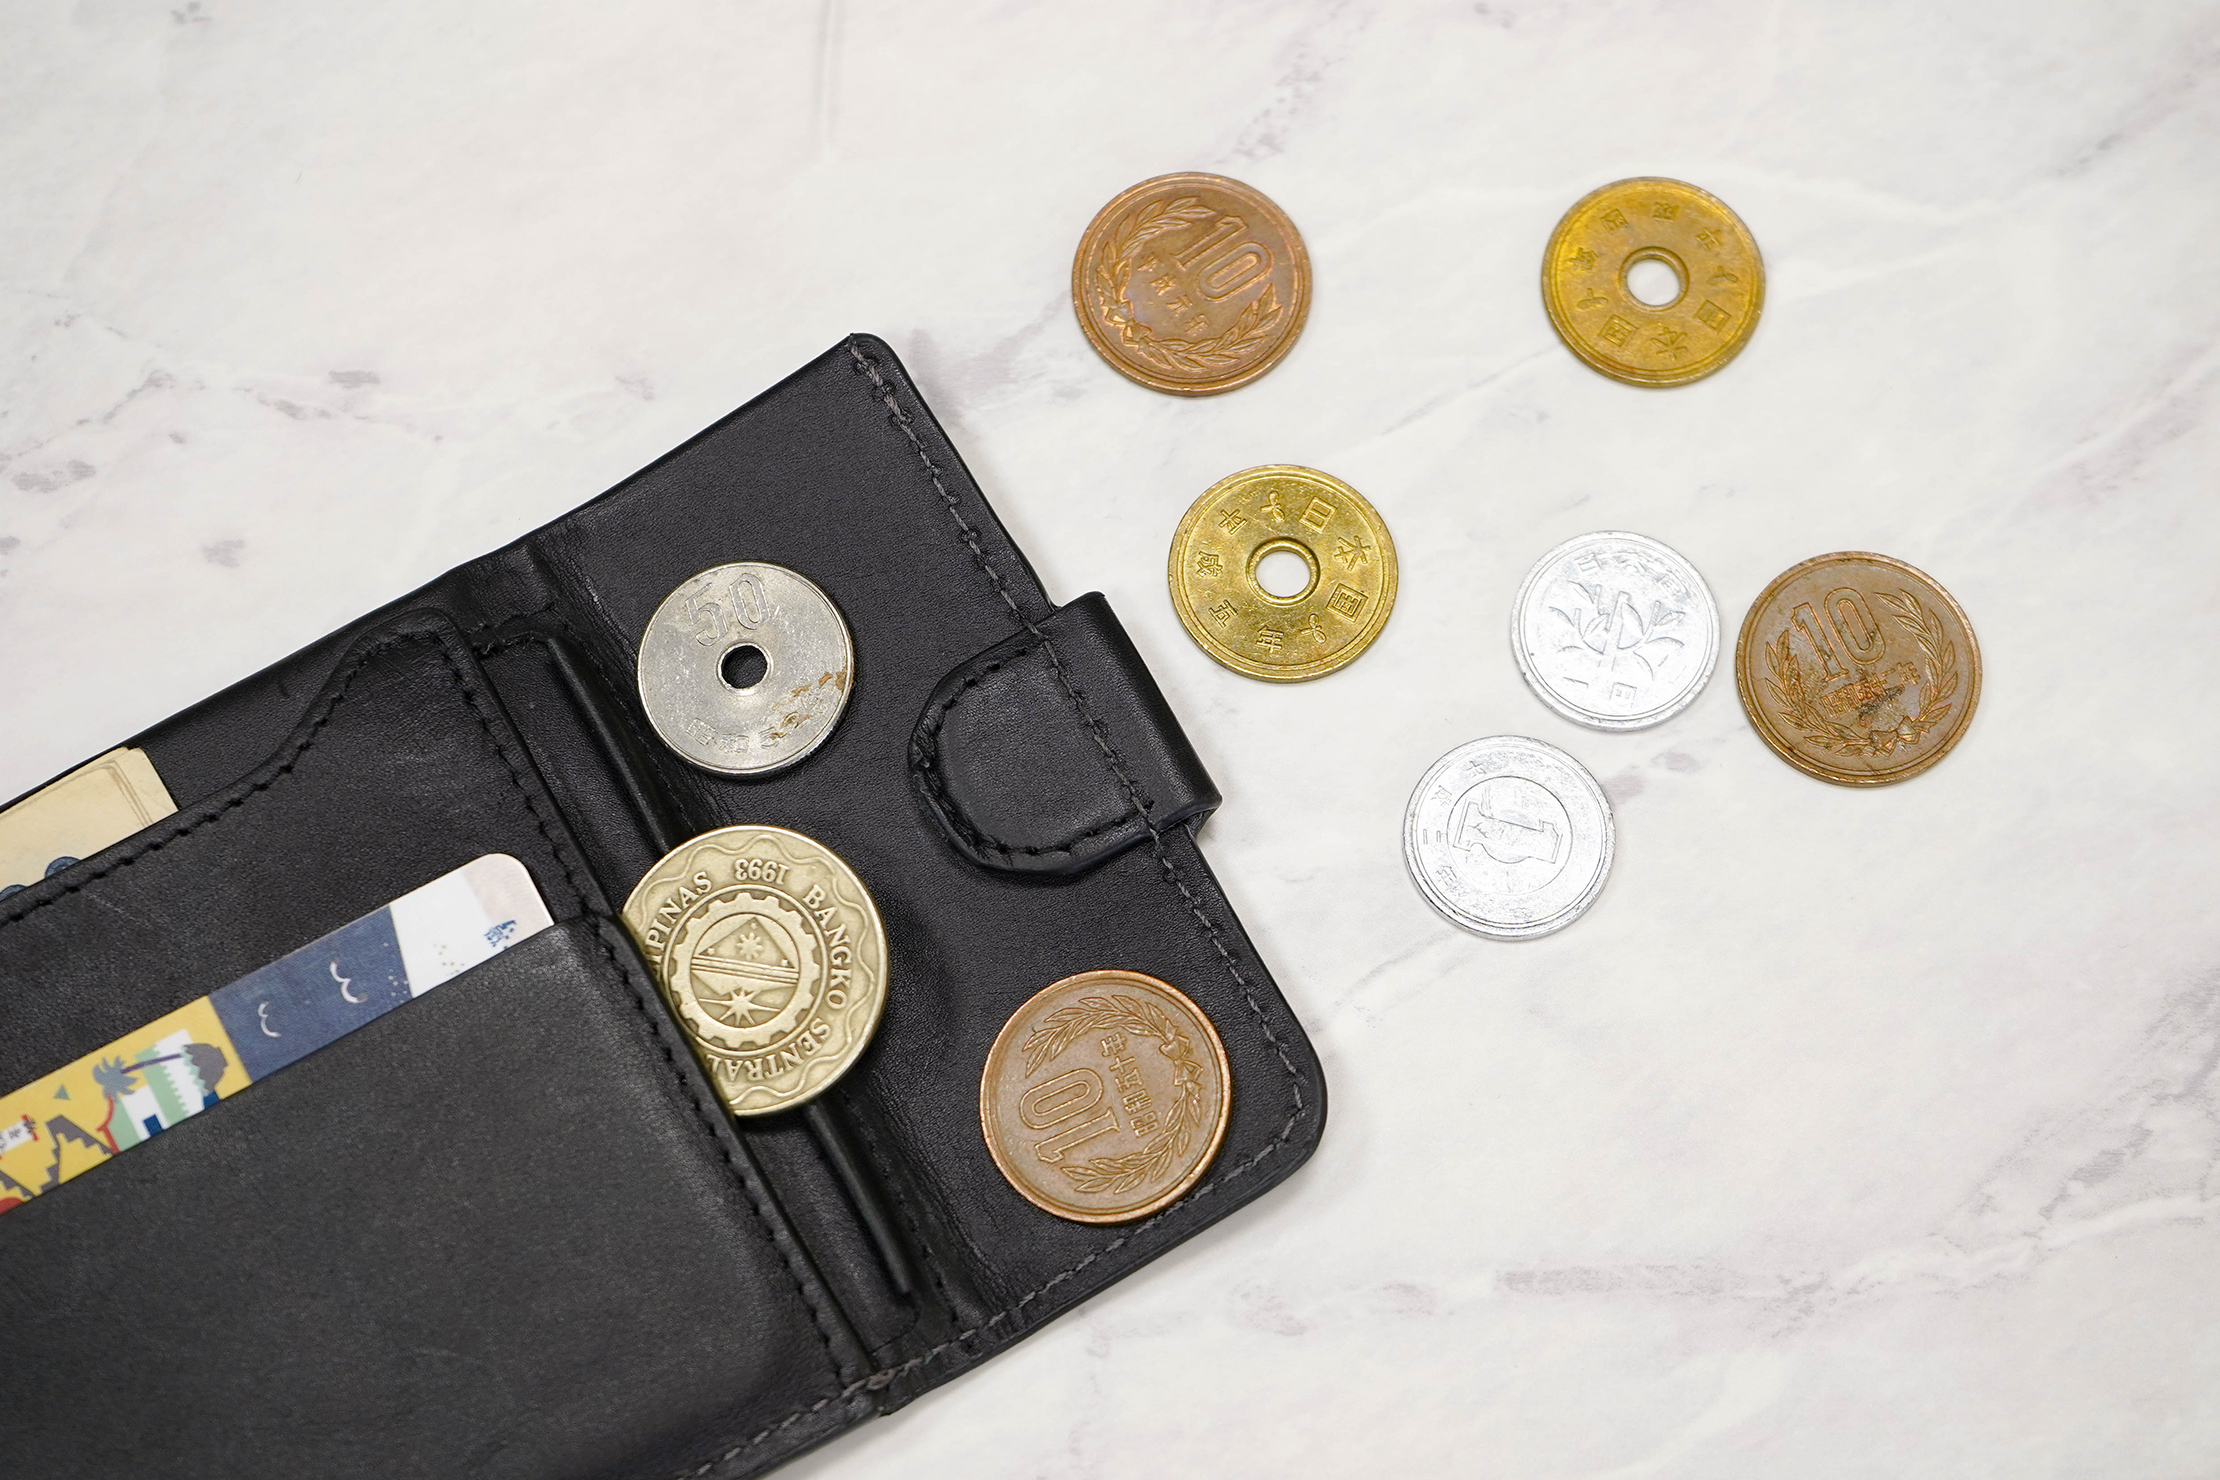 Bellroy Coin Fold With Coins